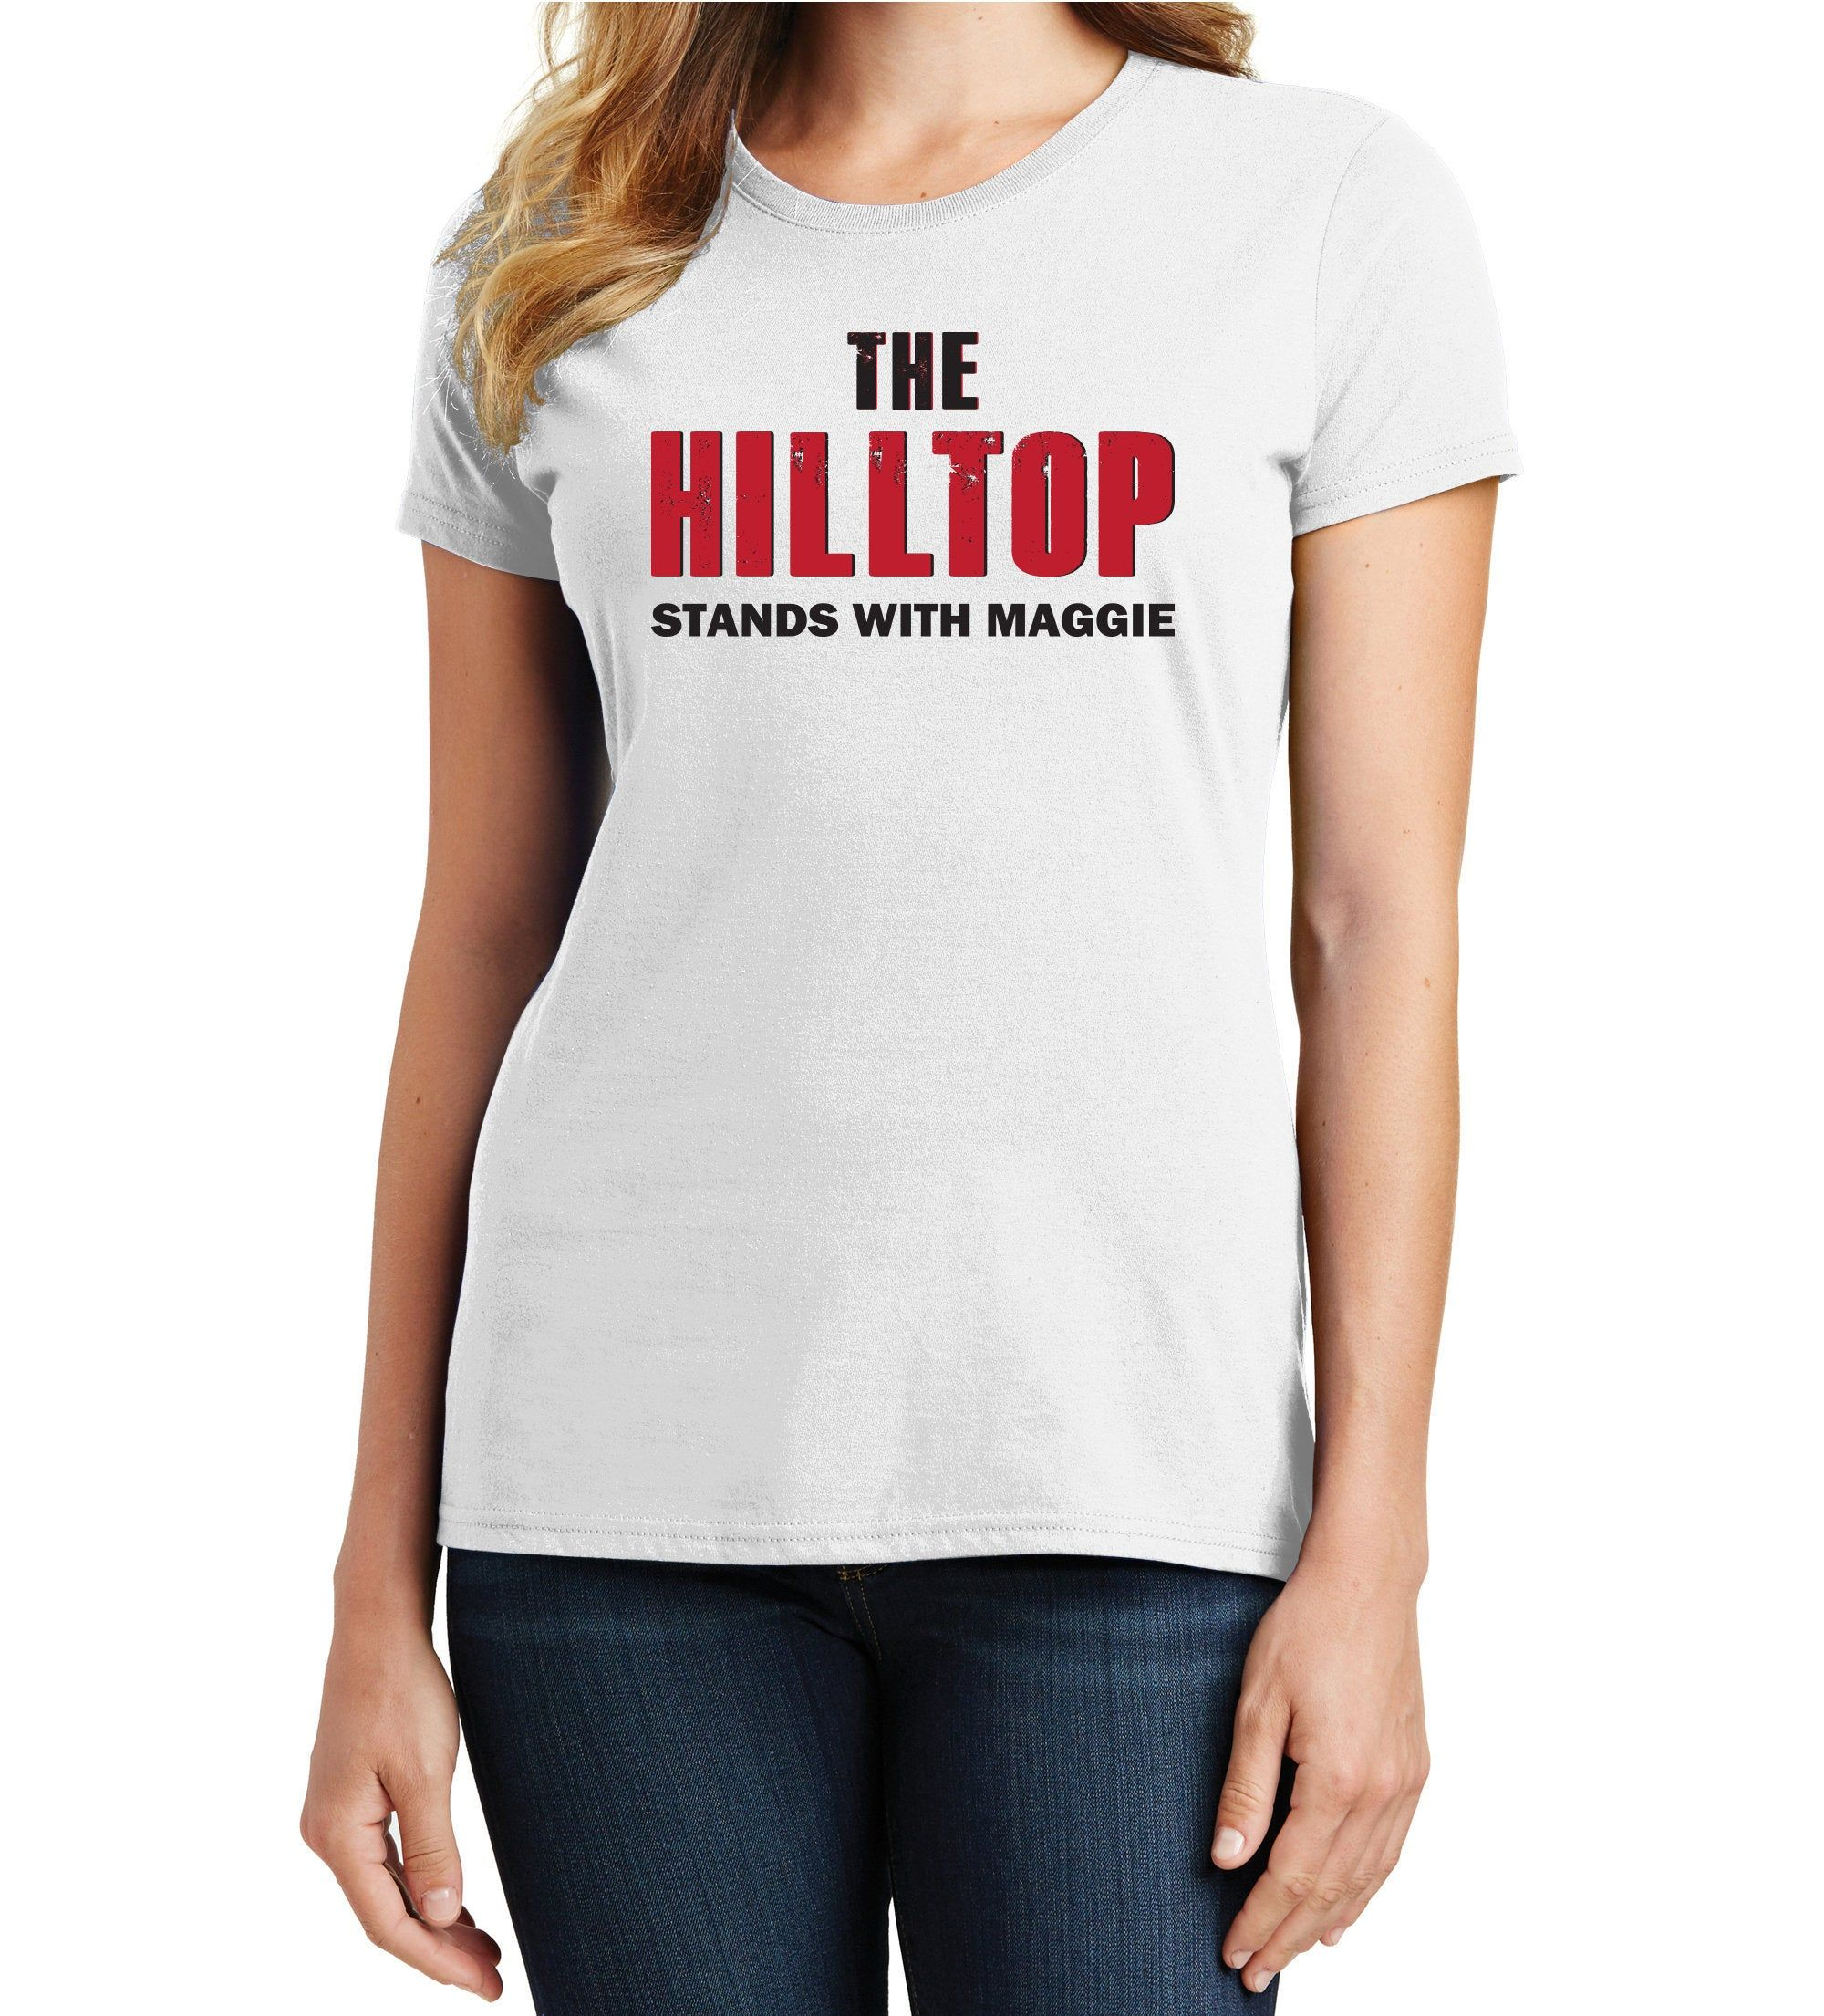 The Hilltop Stands With Maggie Women S T Shirt